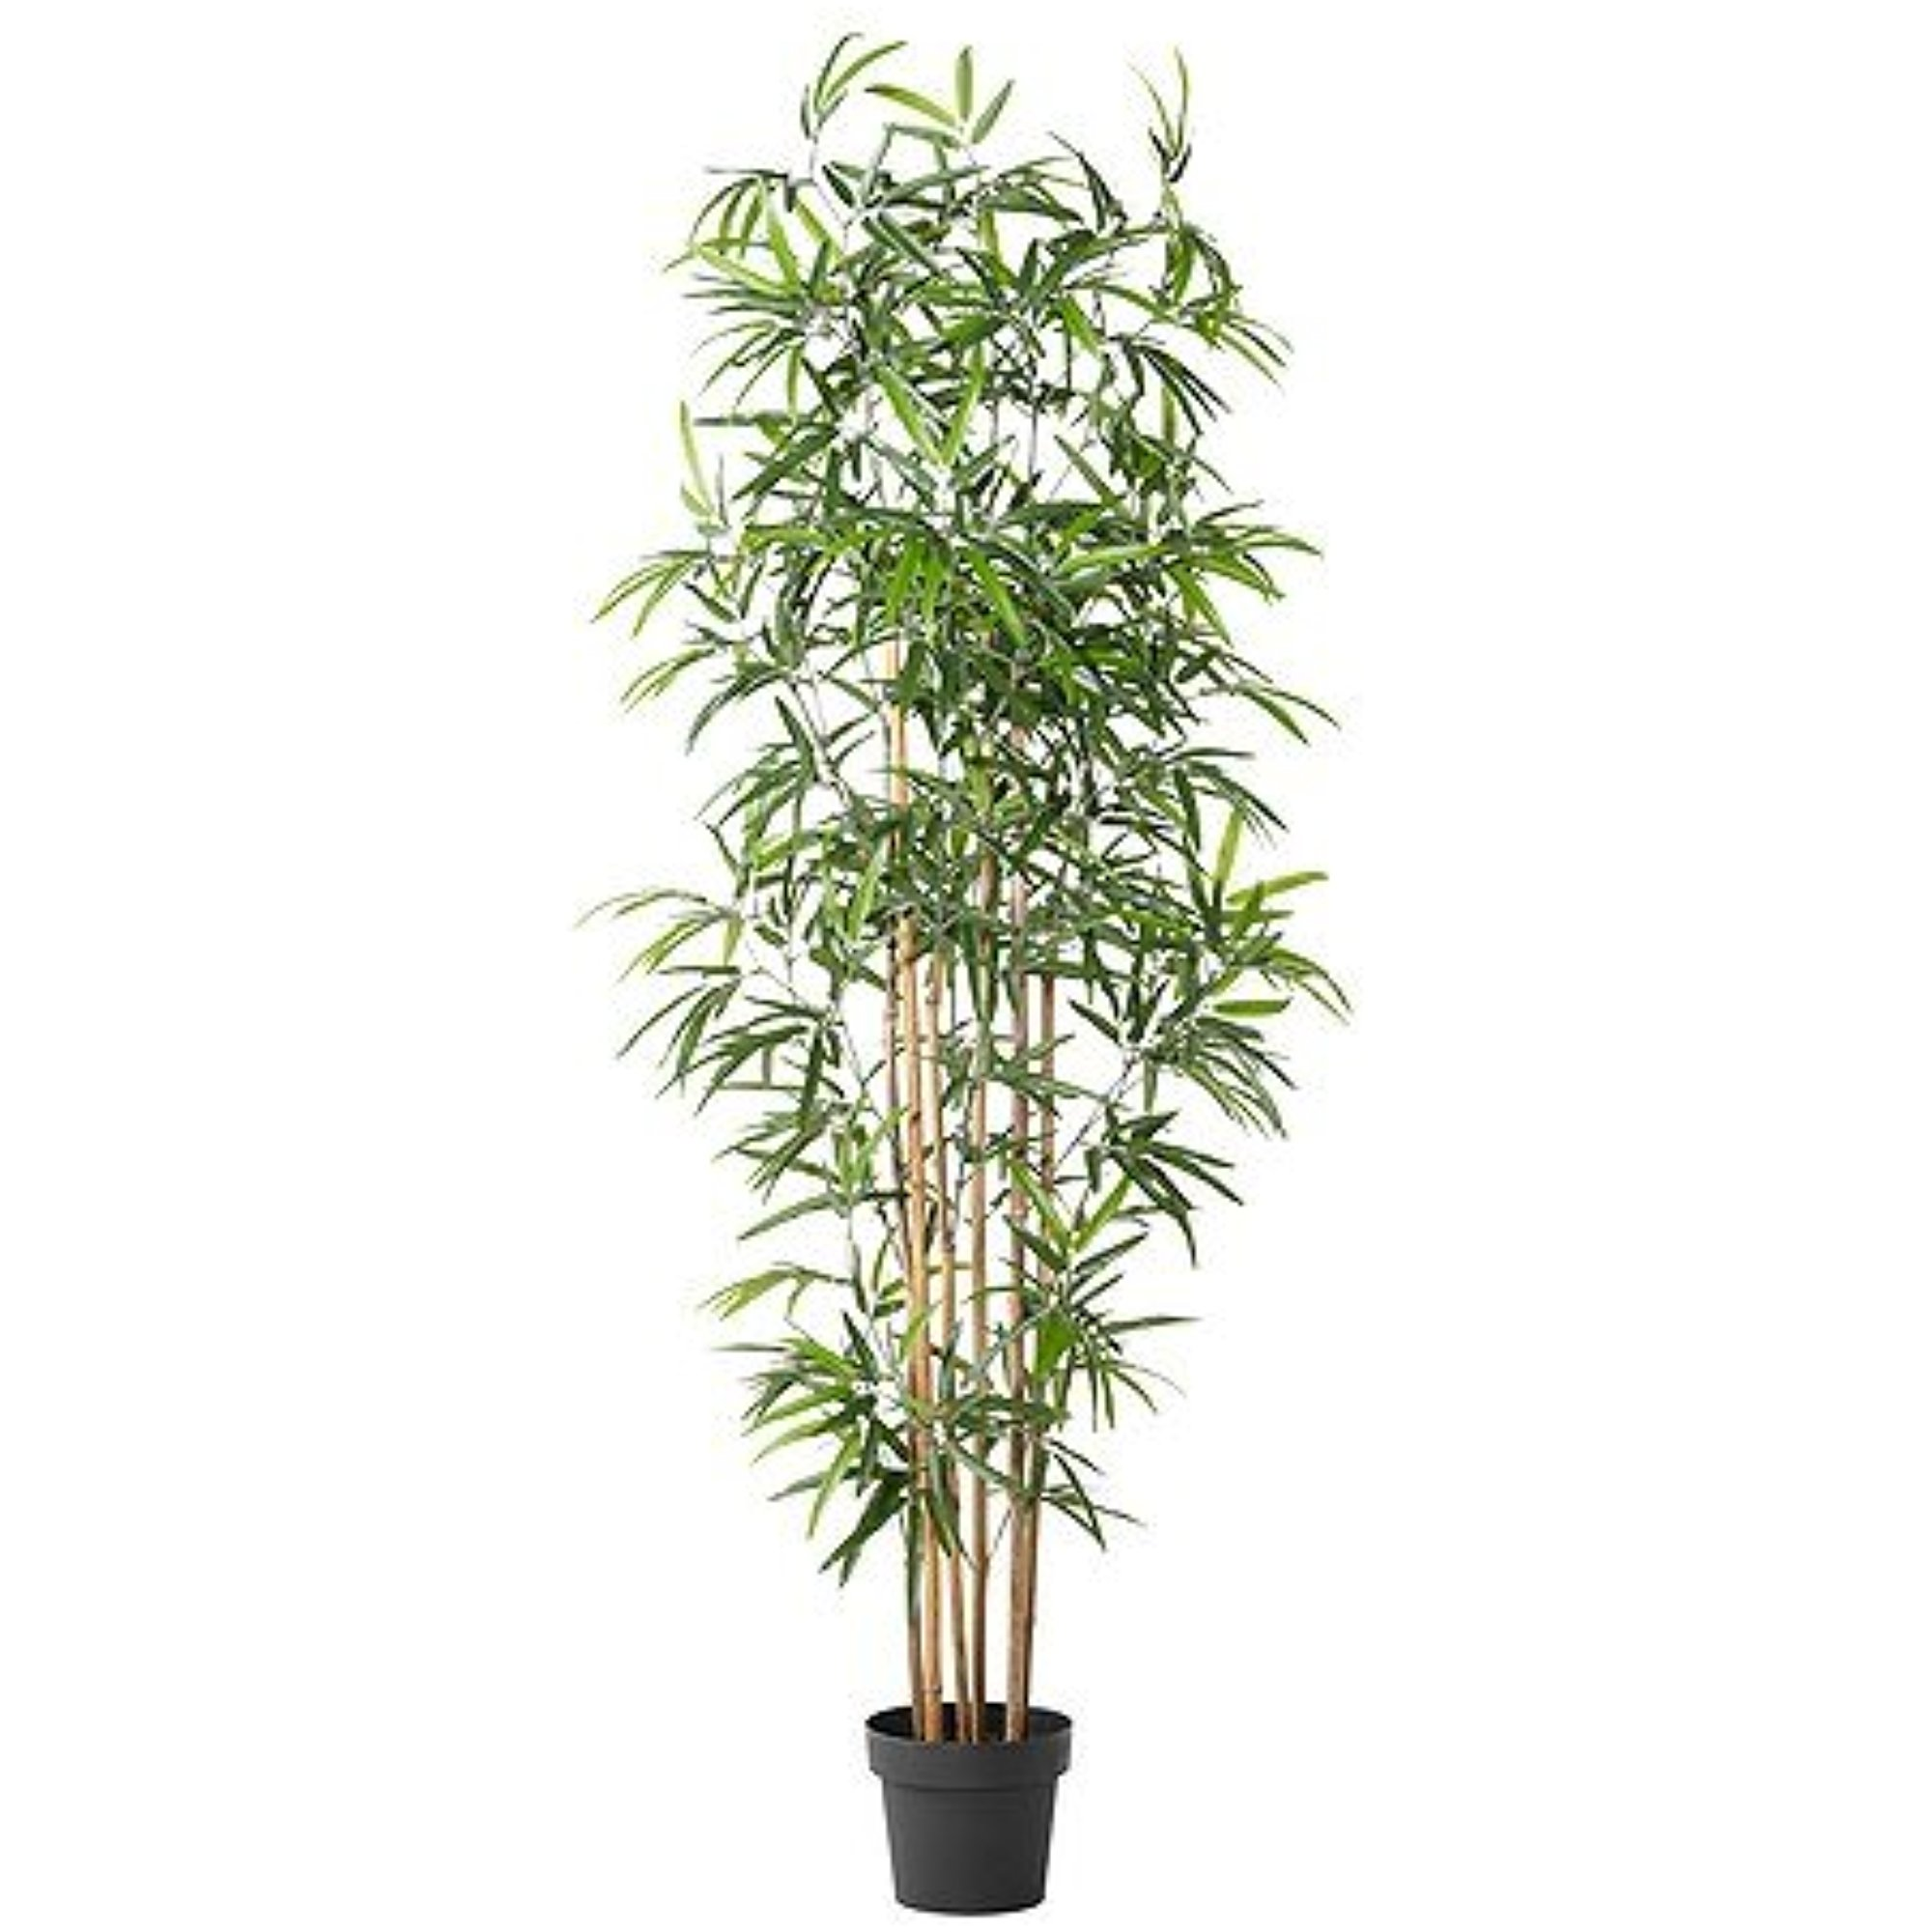 "Ikea Artificial potted plant, bamboo 8 1/4 "" 626.262020.1218"